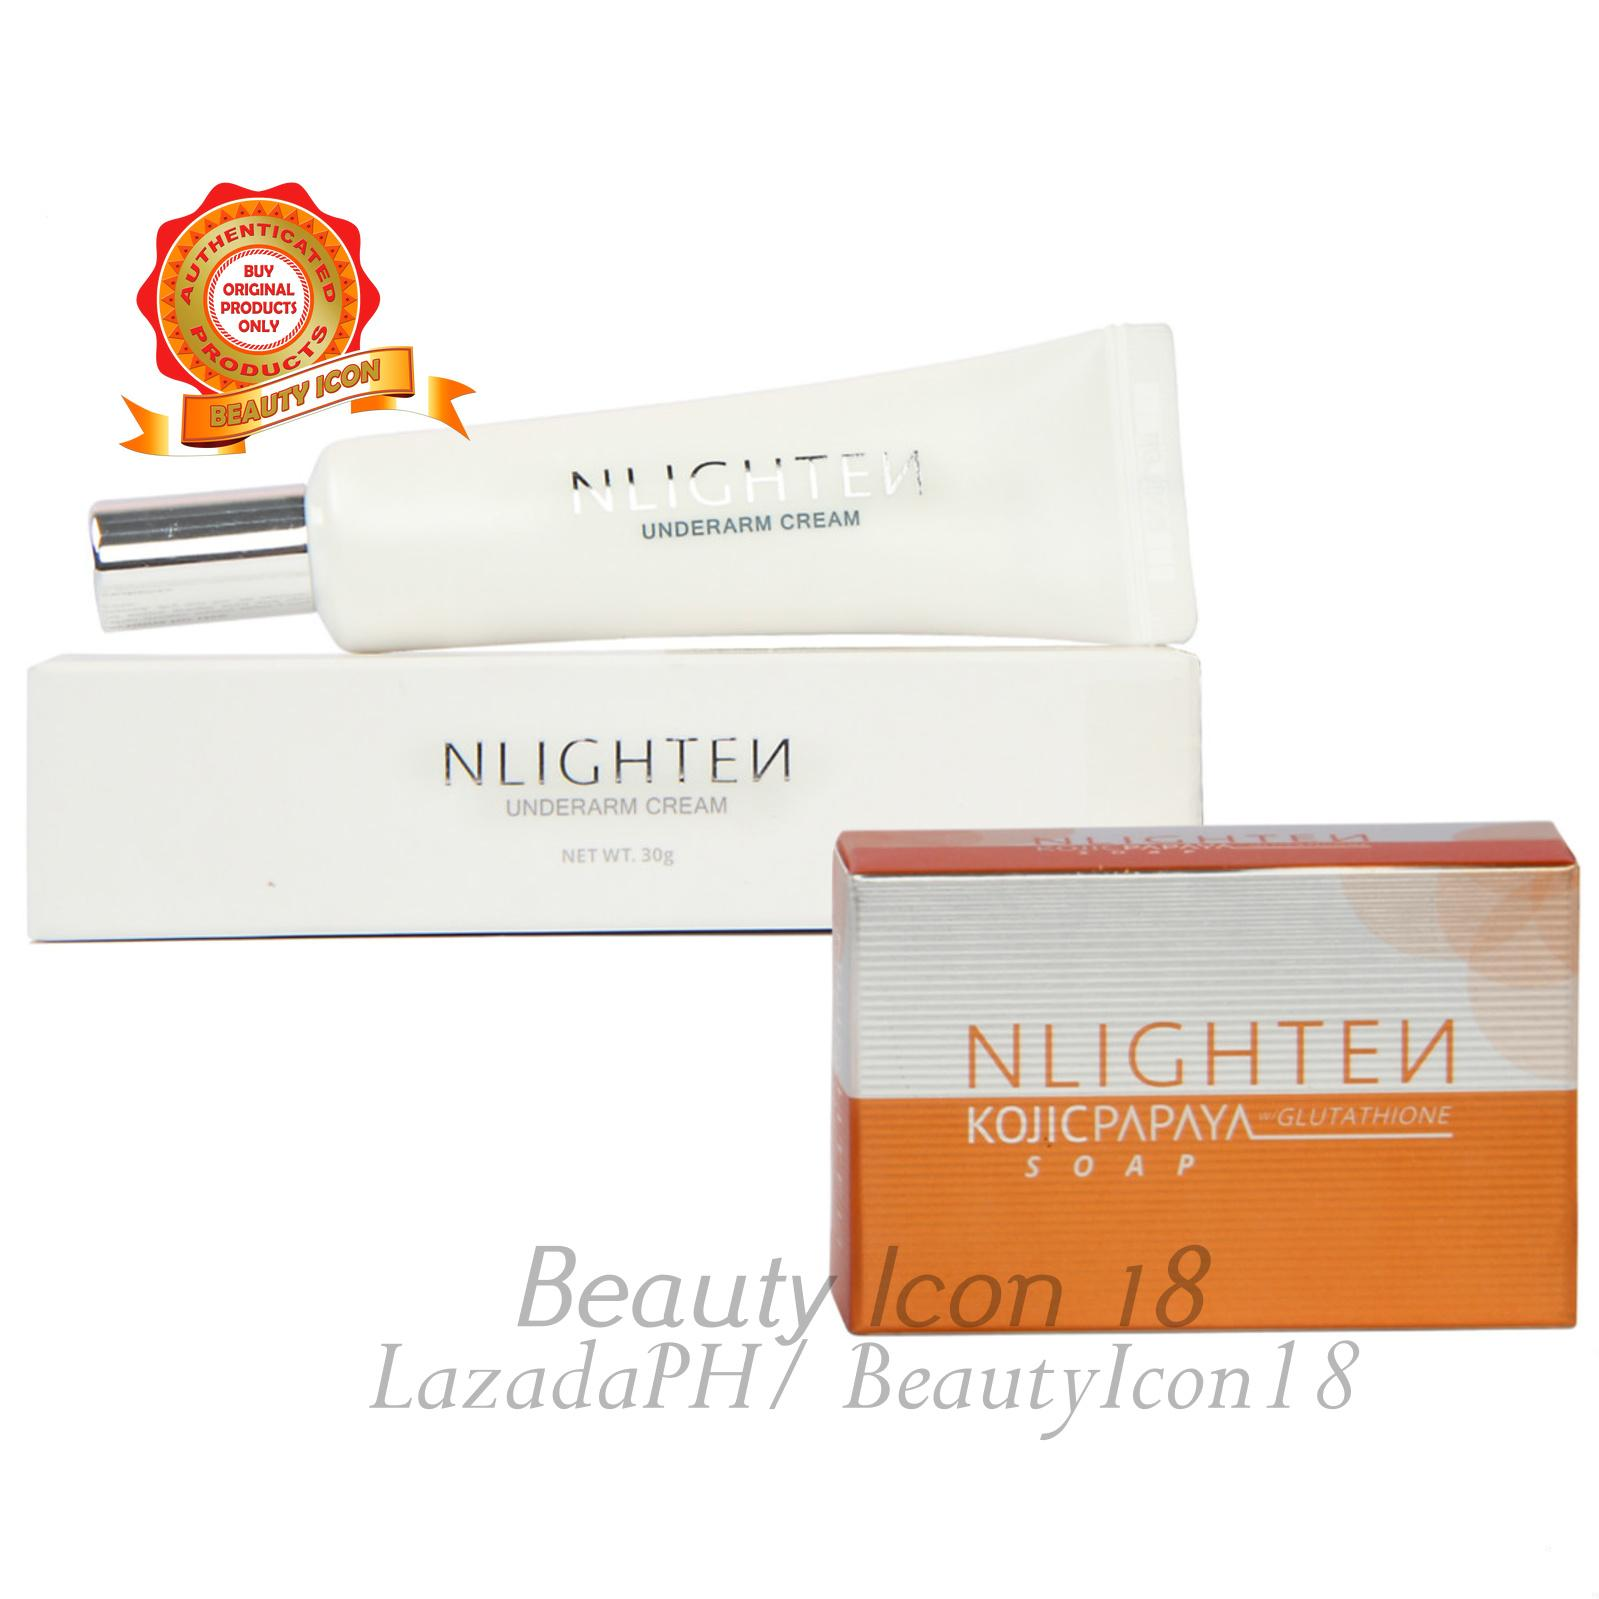 NLighten Underarm Instant Brightening Set of Kojic Papaya Soap and Underarm Cream